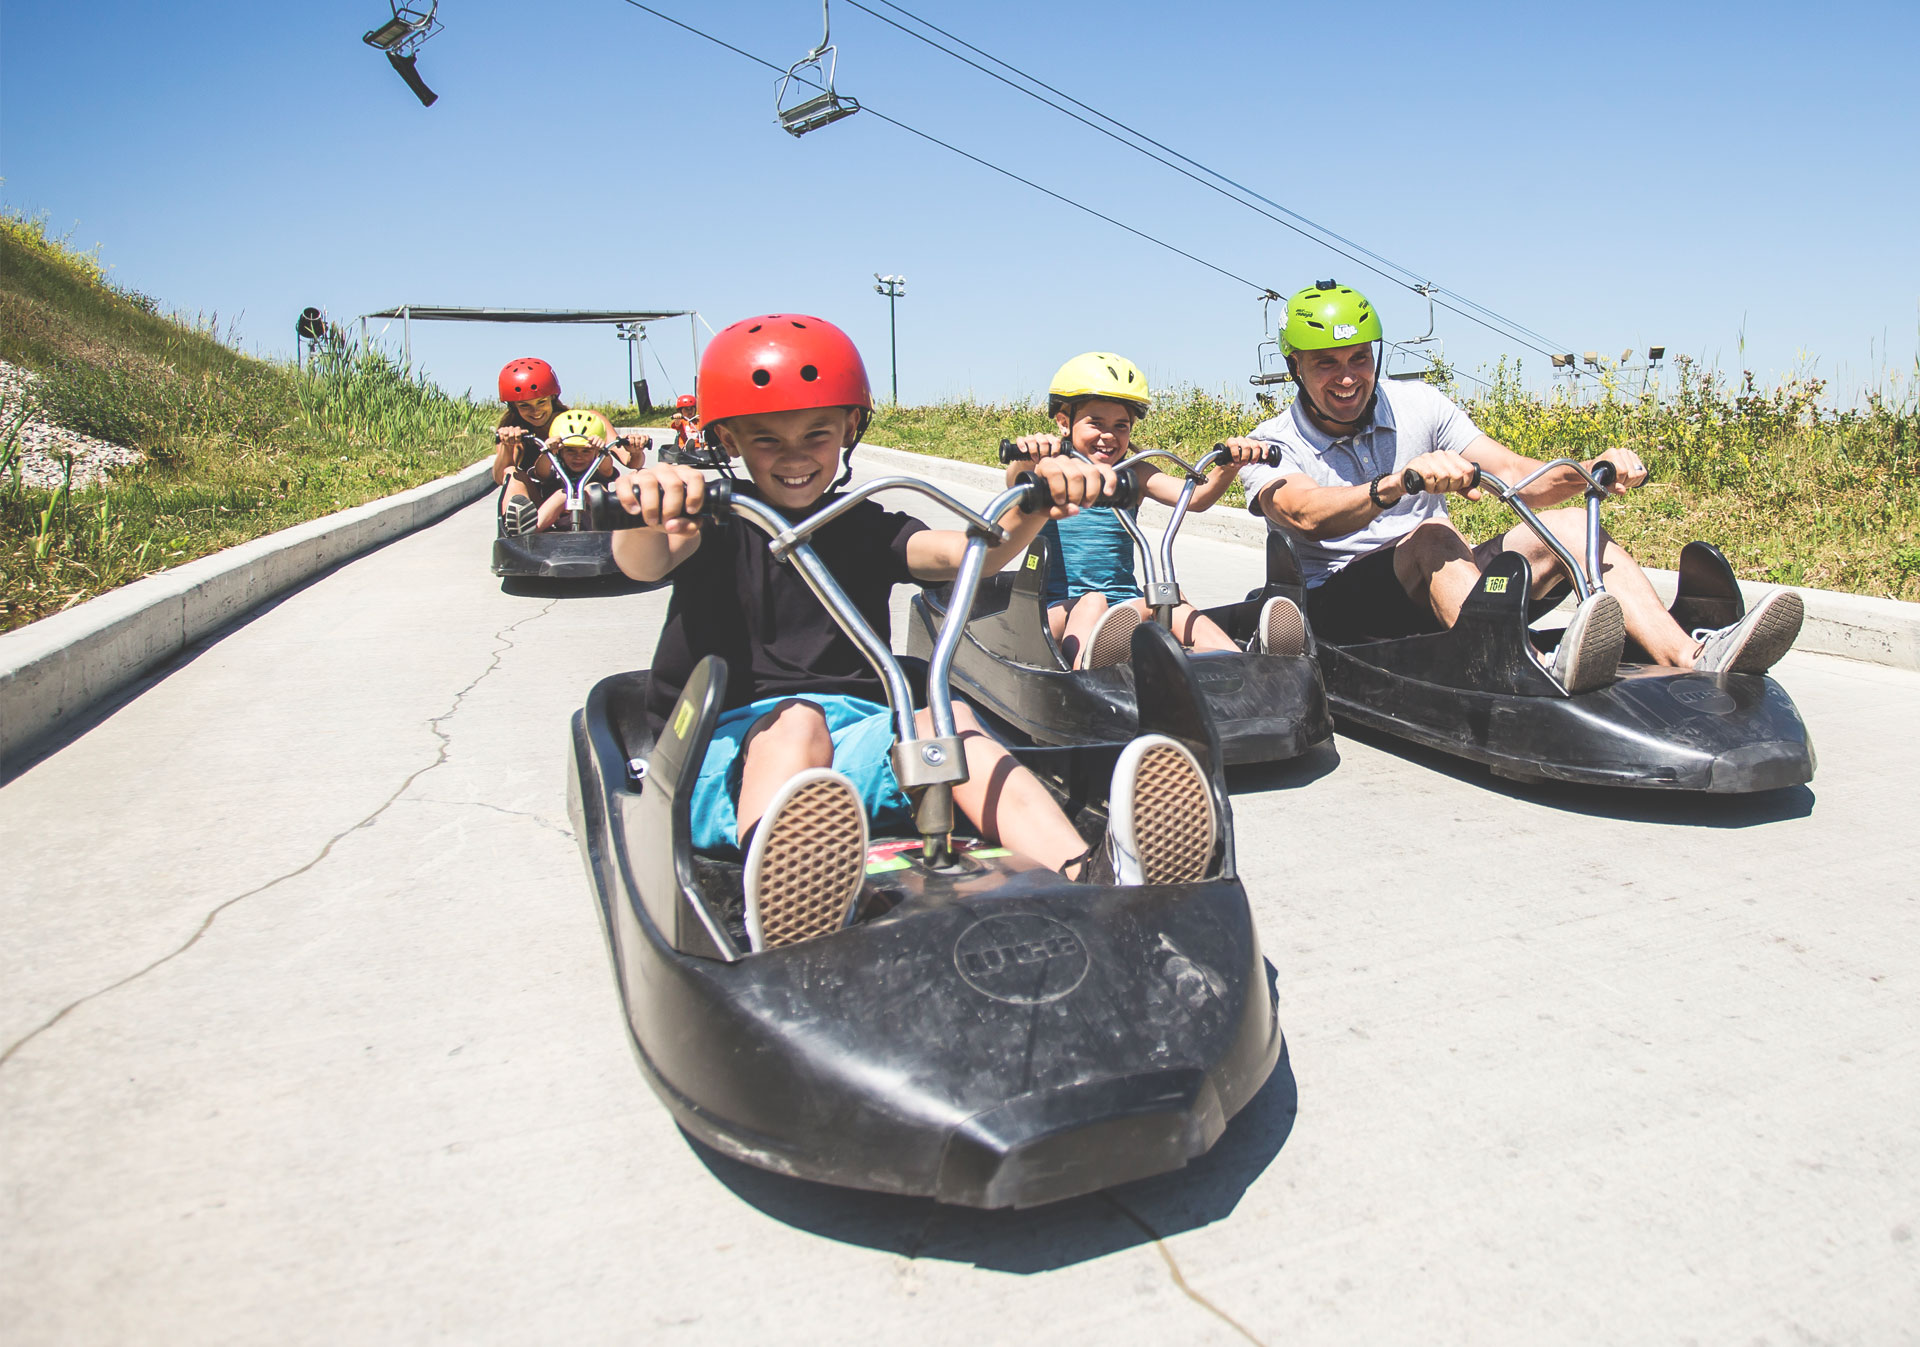 Riding luge cart down Skyline Luge track at Winsport